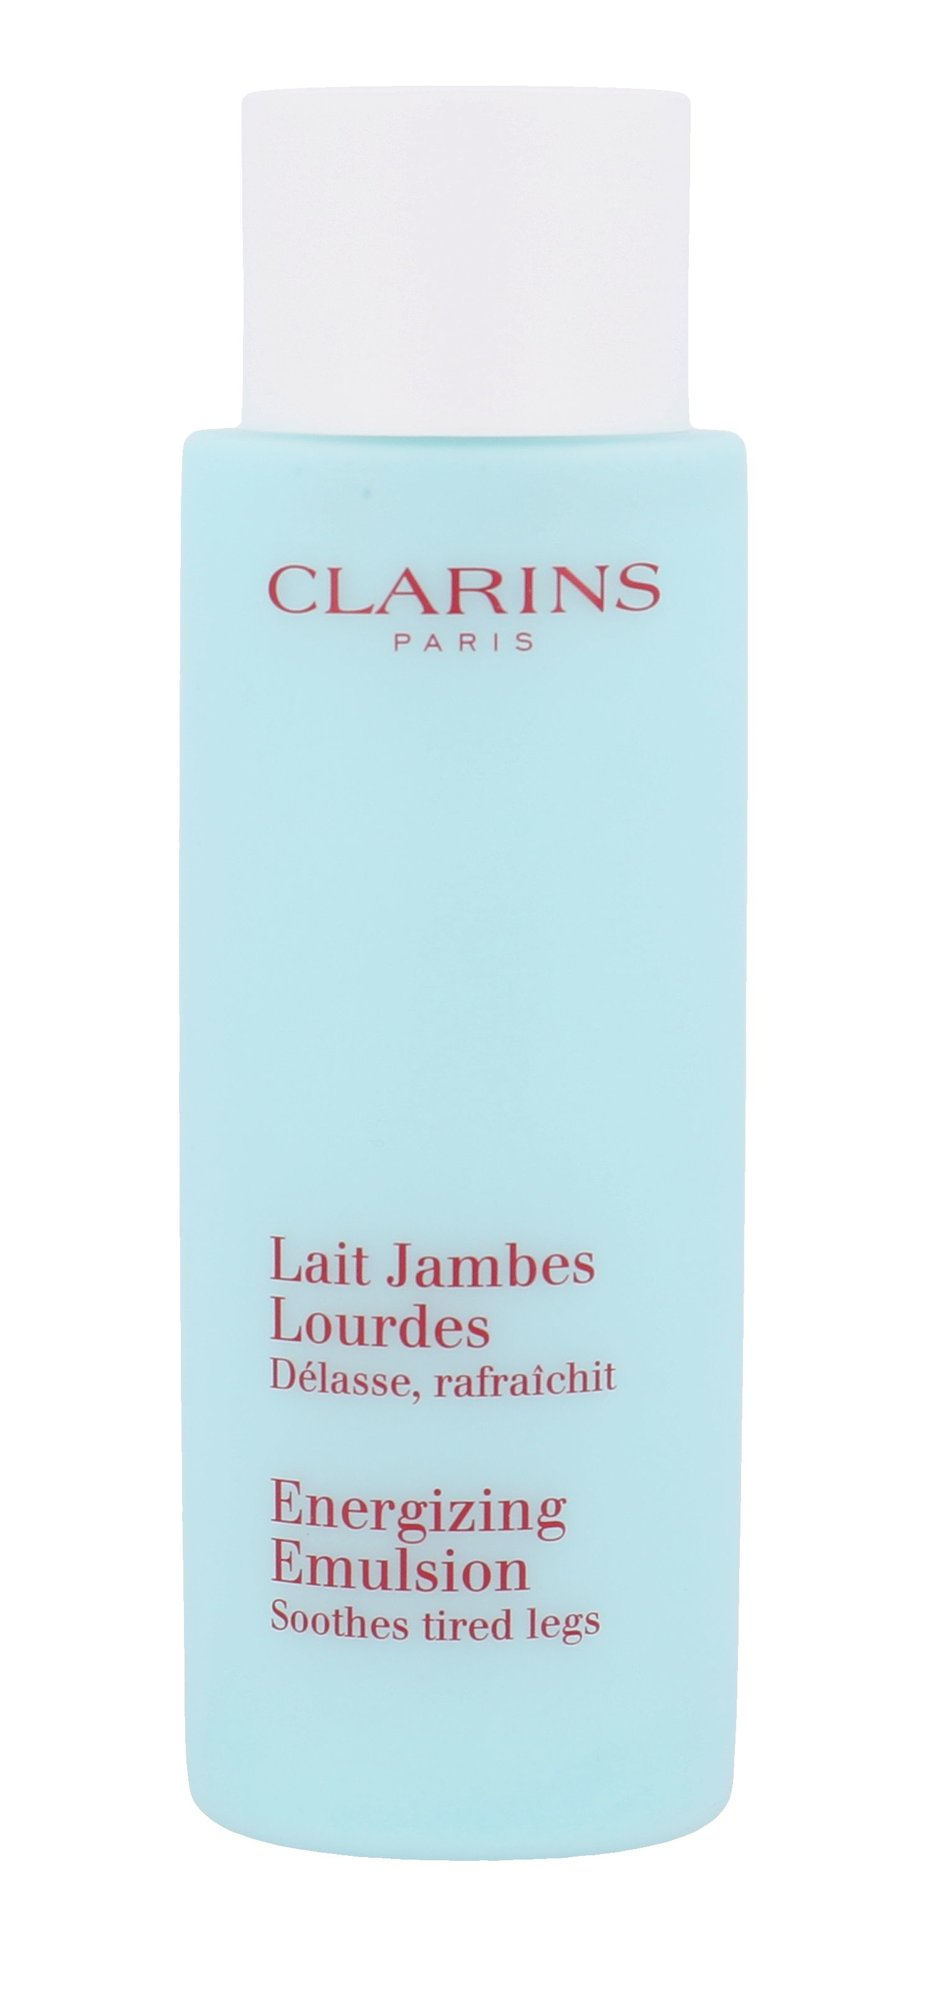 Clarins Specific Care Cosmetic 125ml